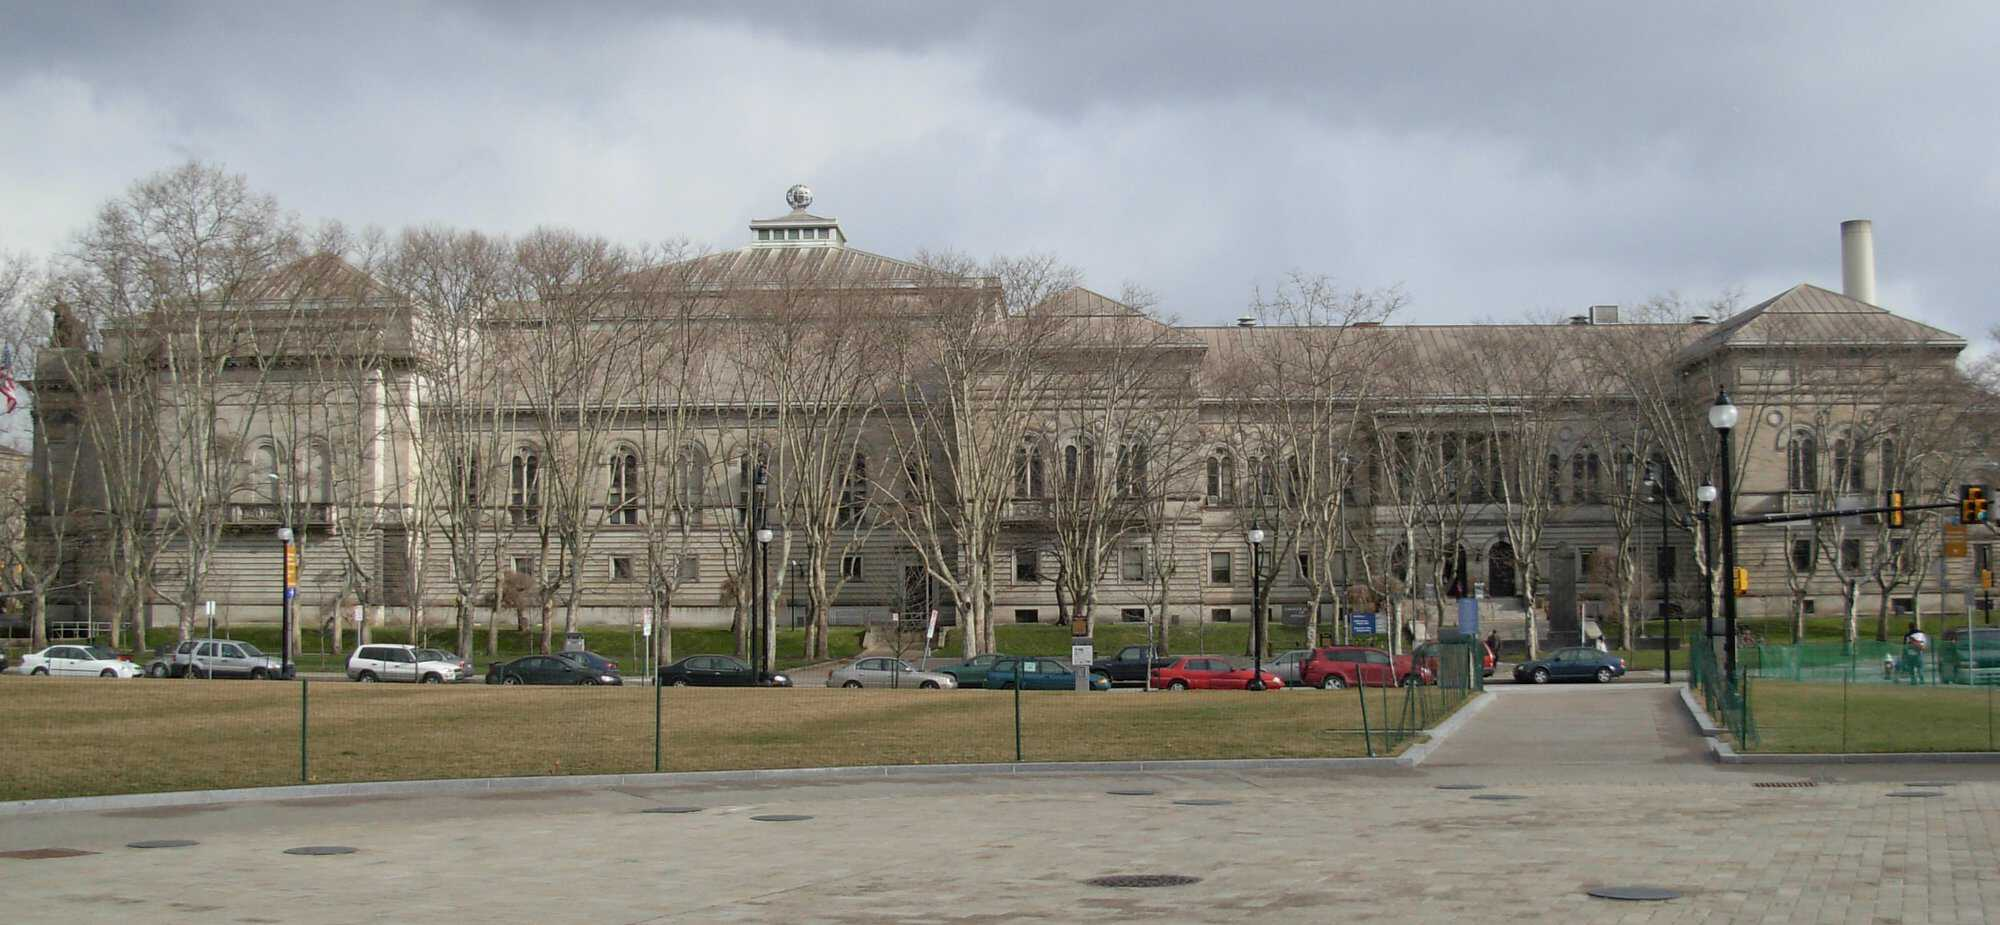 Carnegie_Library_of_Pittsburgh-PD.jpg